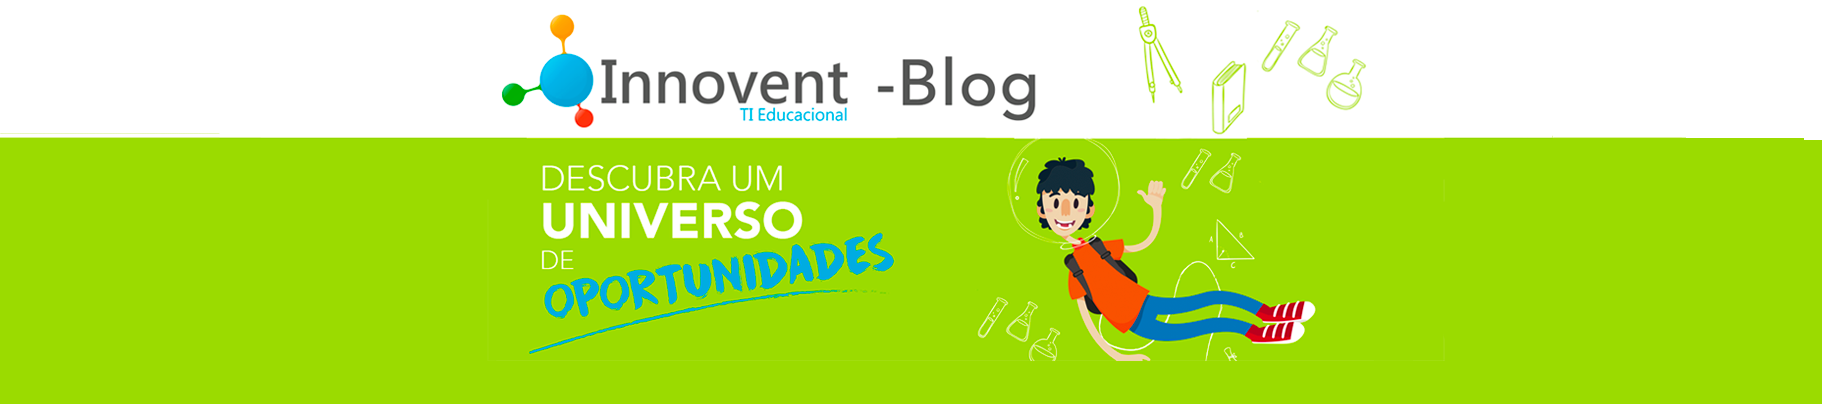 Innovent Educacional - Blog